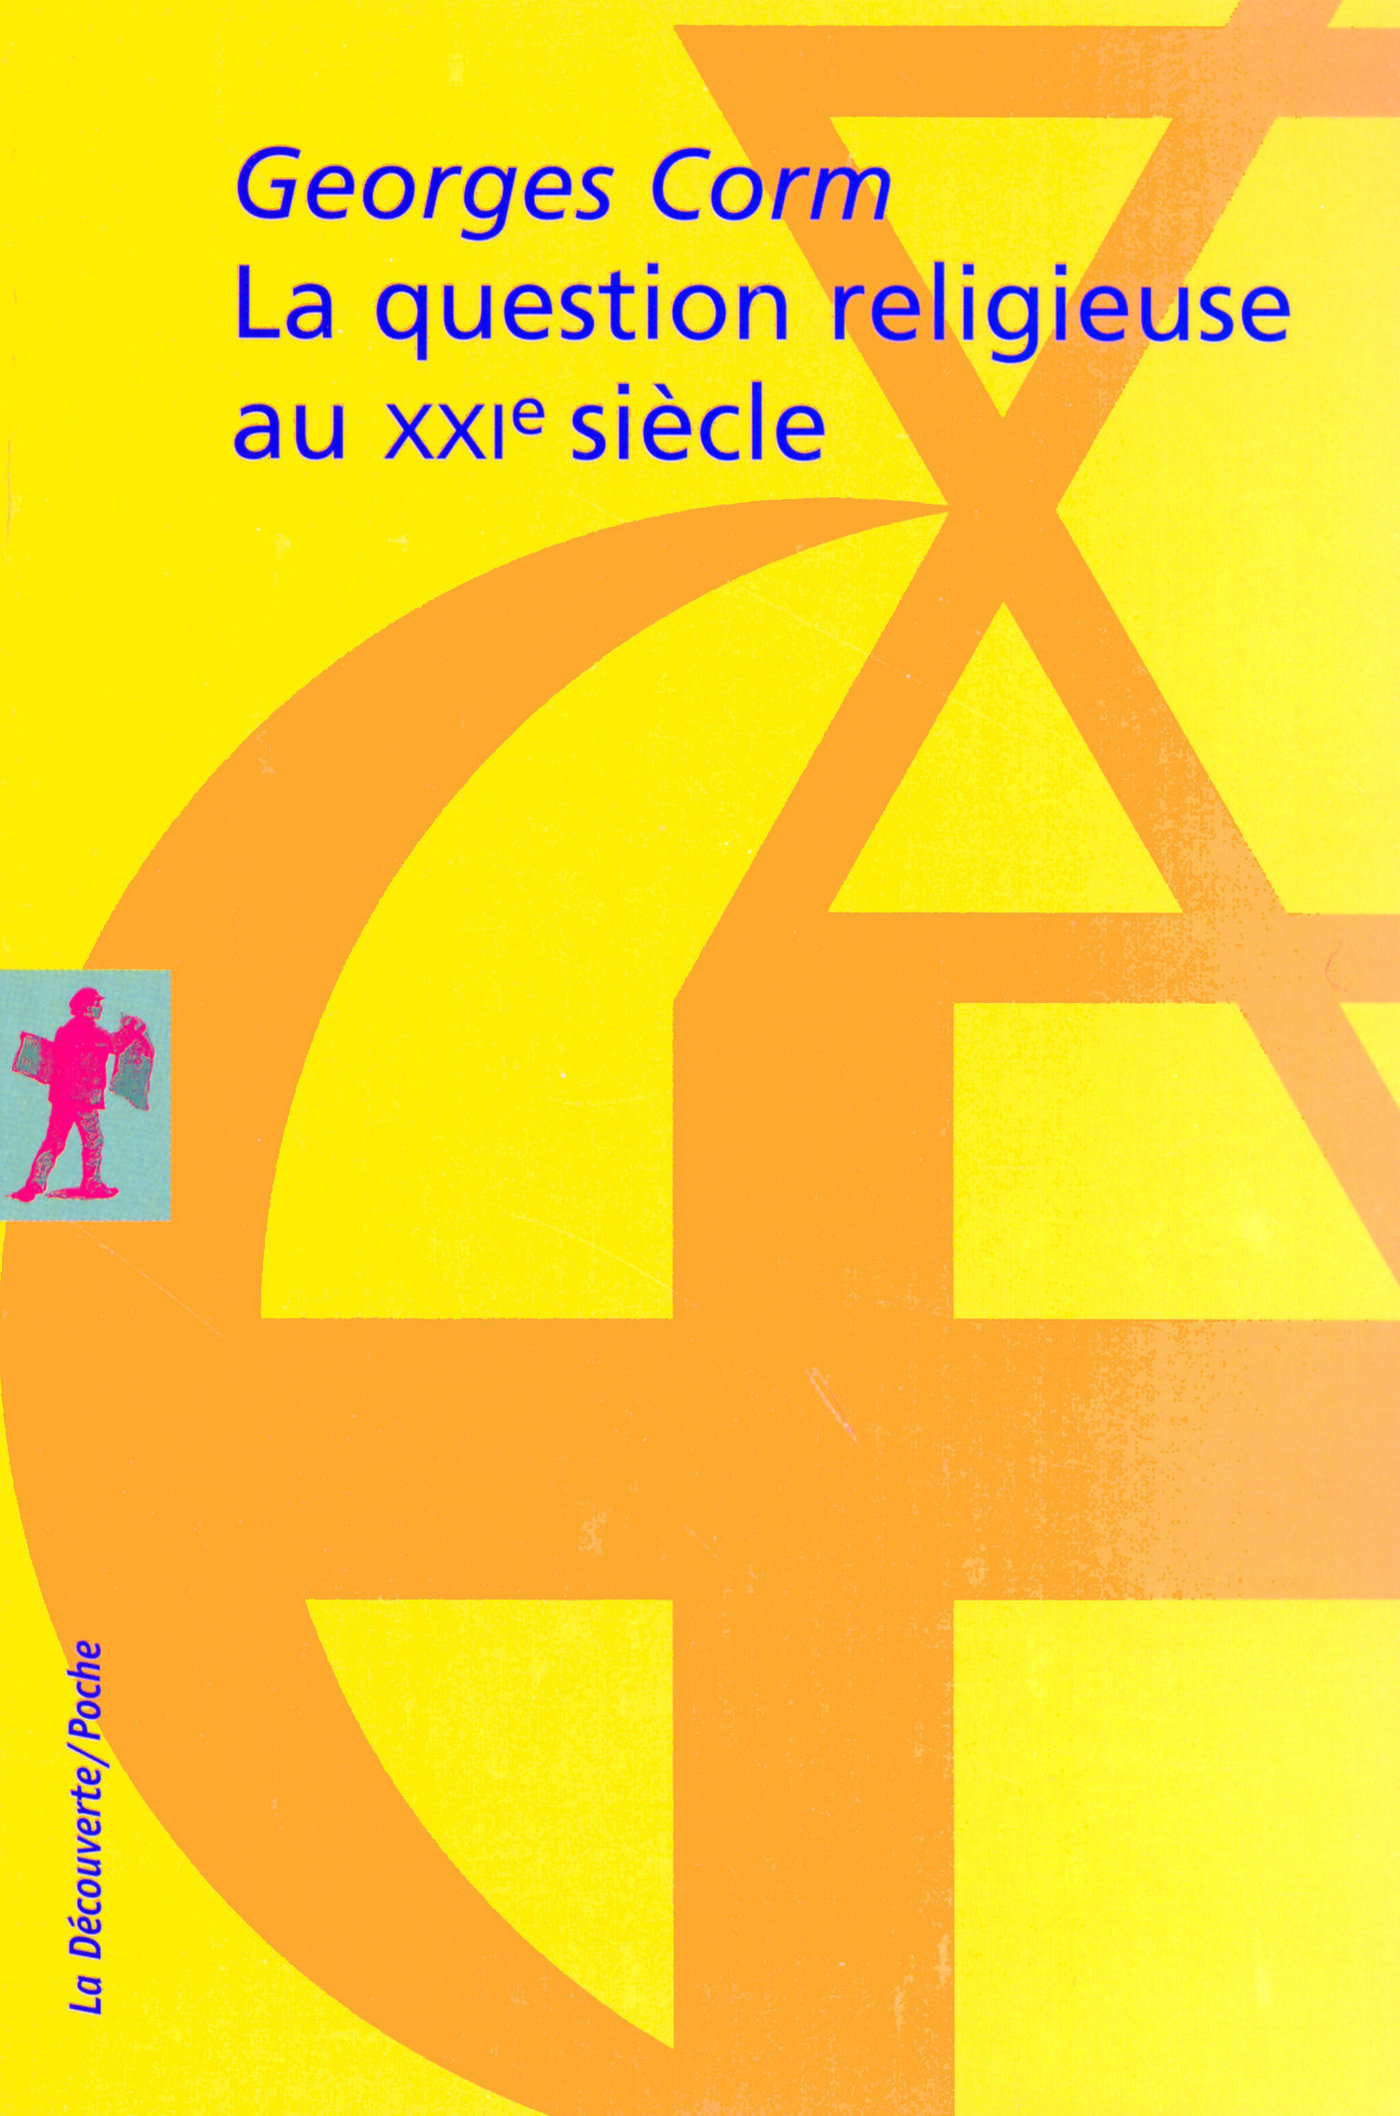 La question religieuse au XXIe siècle (ebook)